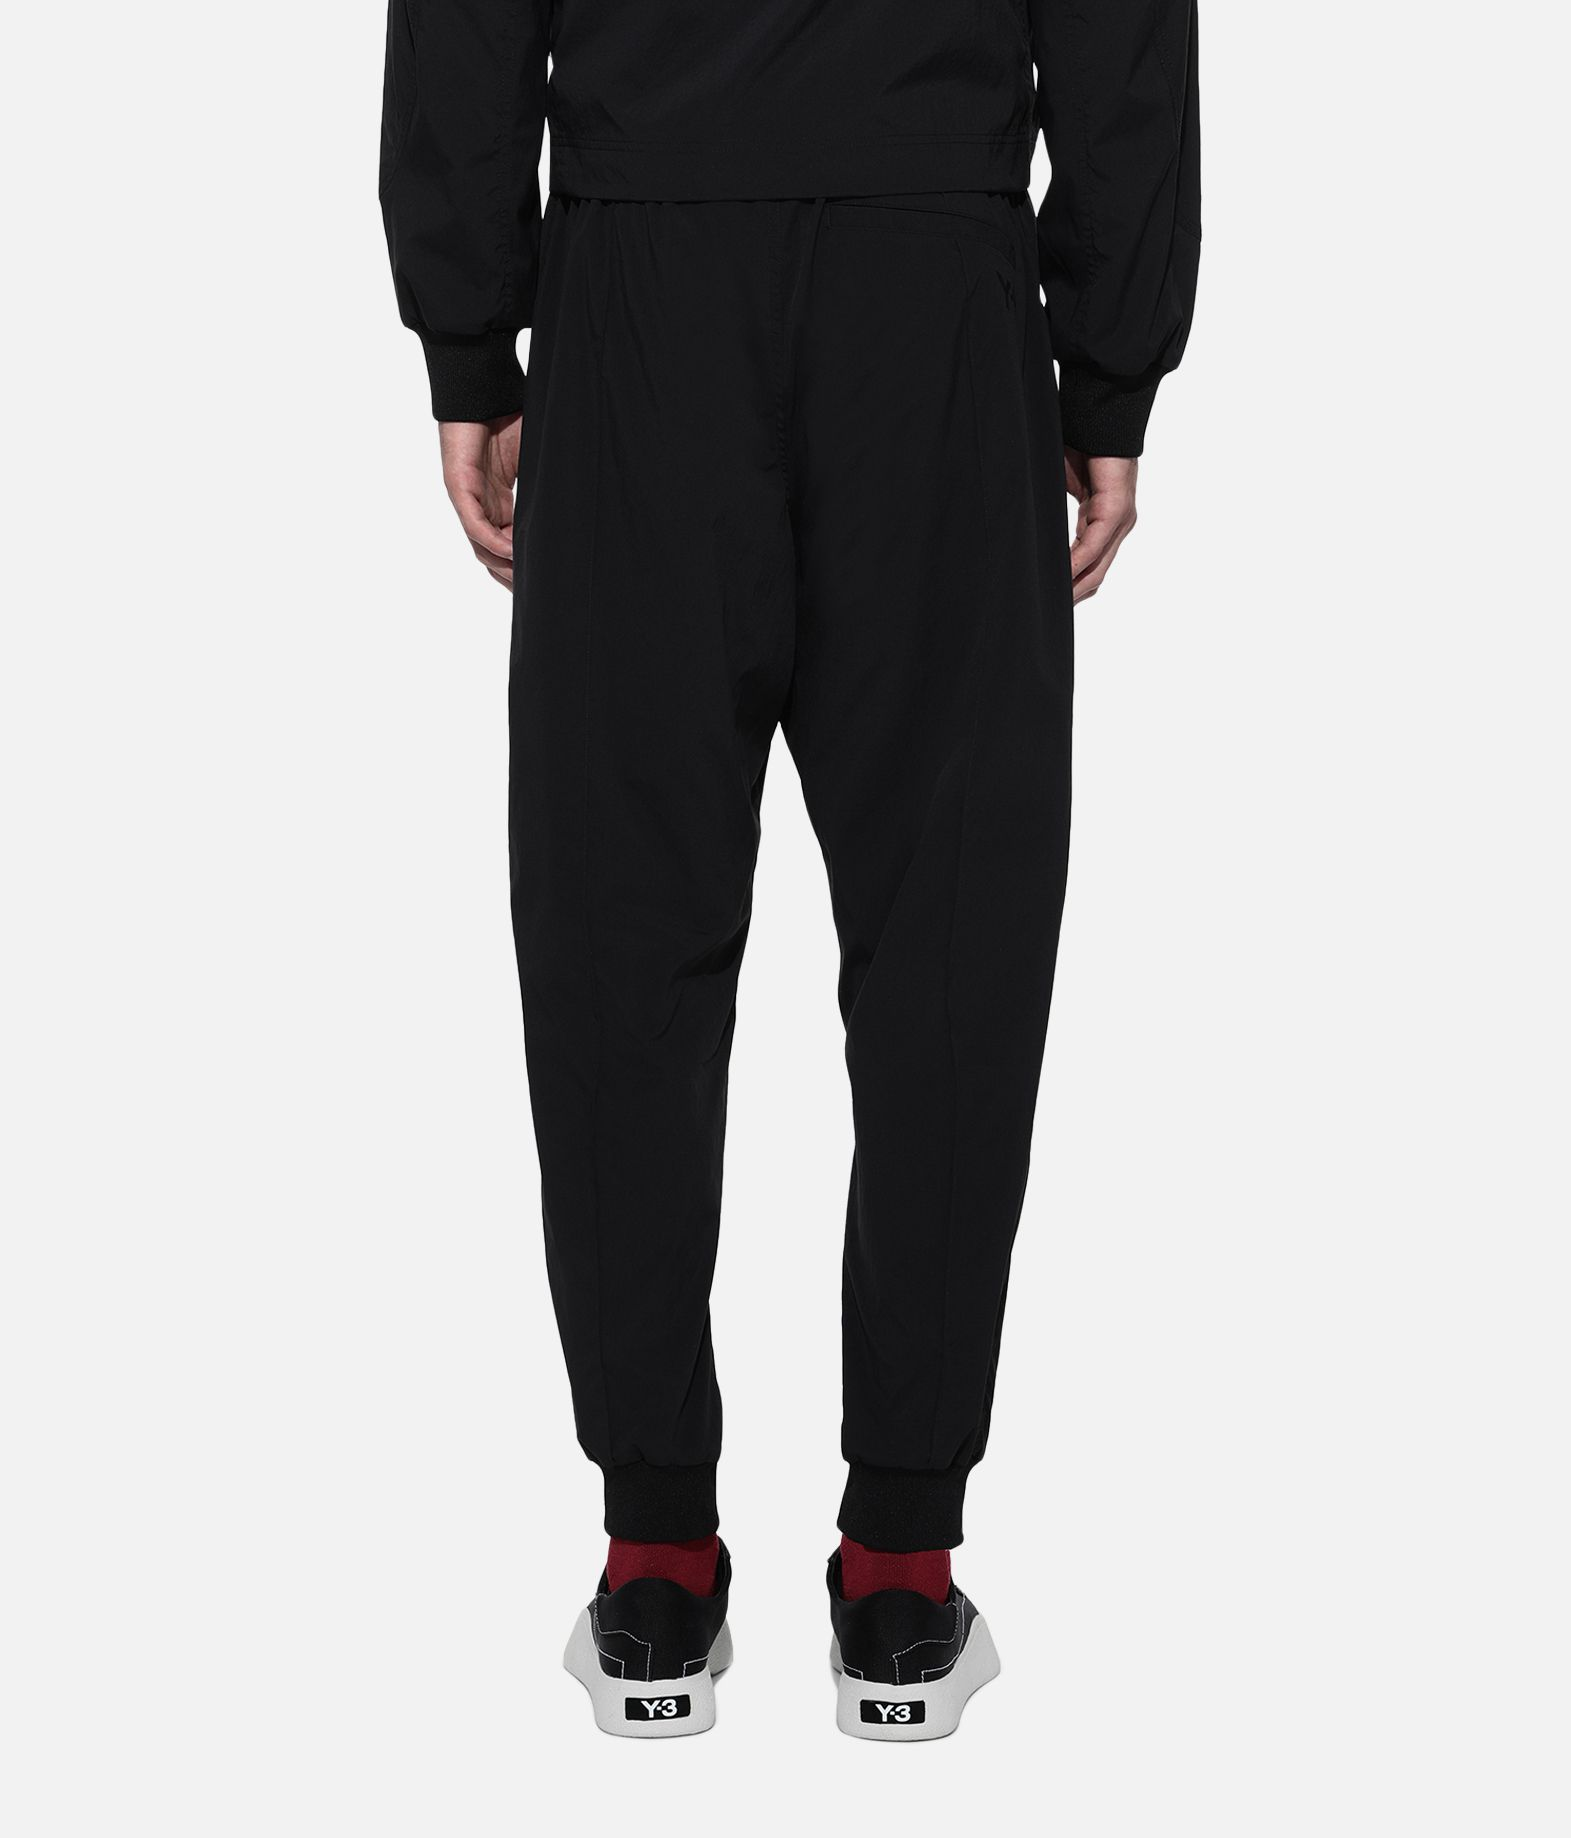 Y-3 Y-3 Luxe Track Pants Tracksuit bottoms Man d